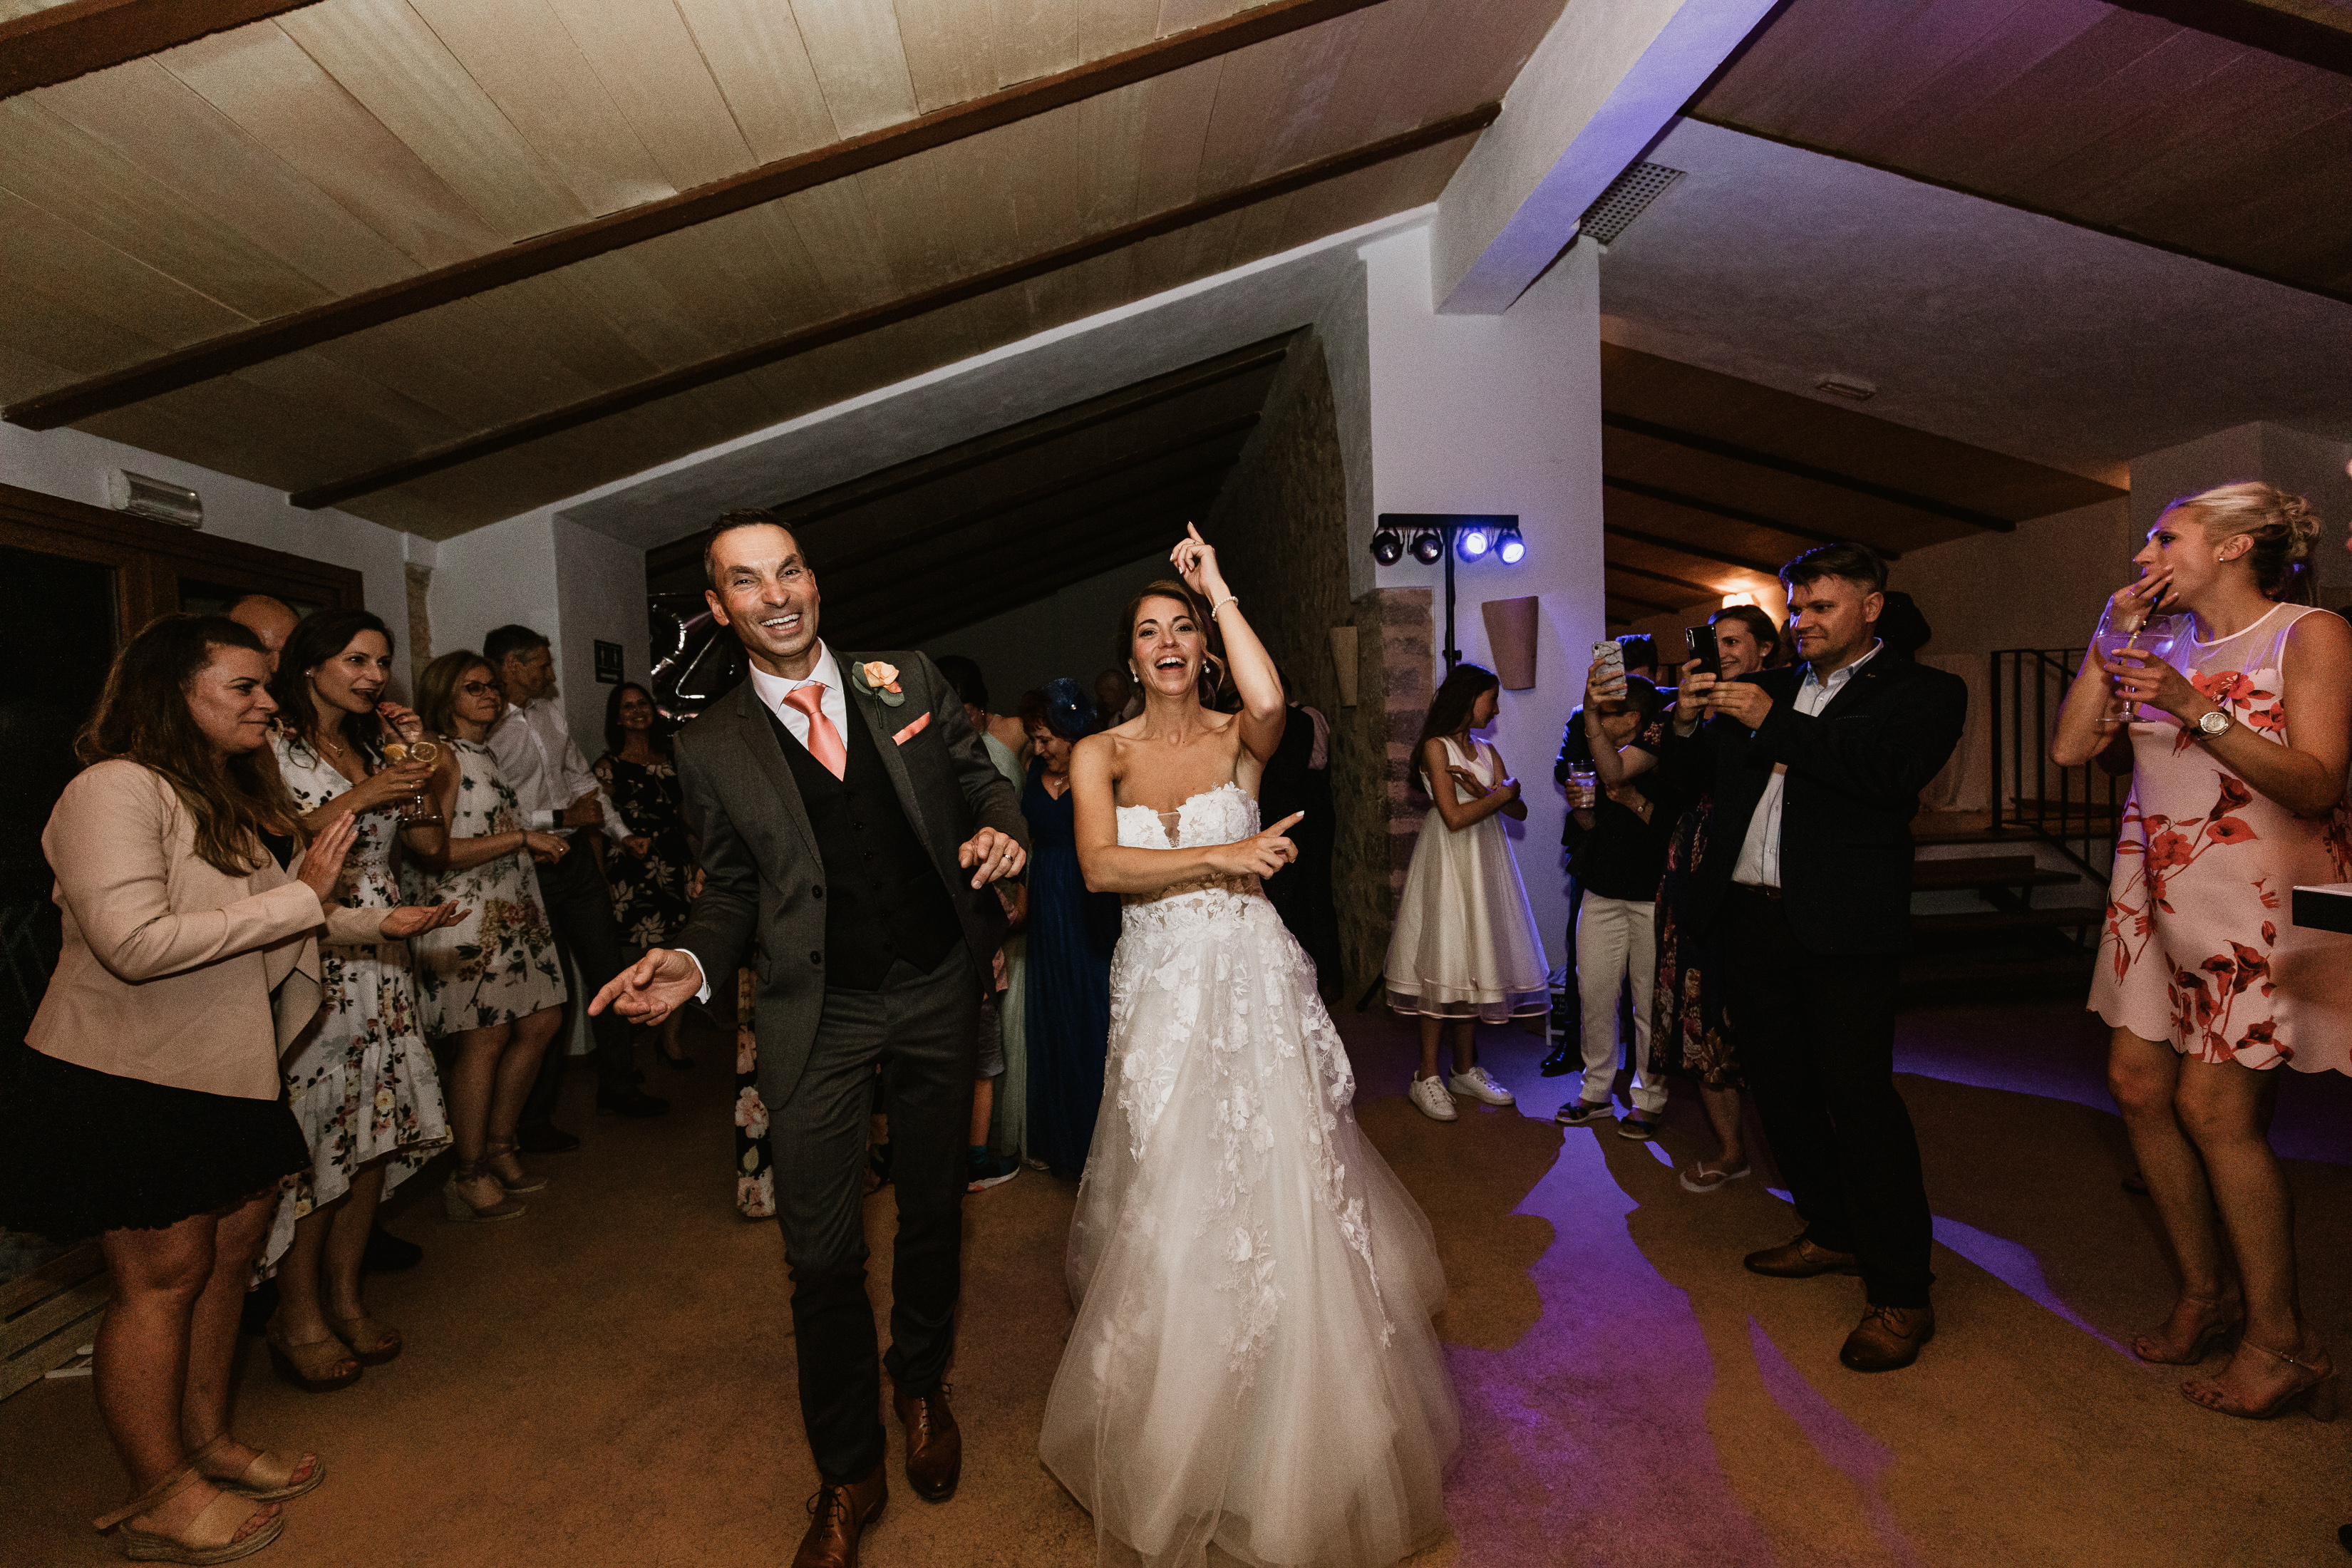 The bride and groom take to the dance floor